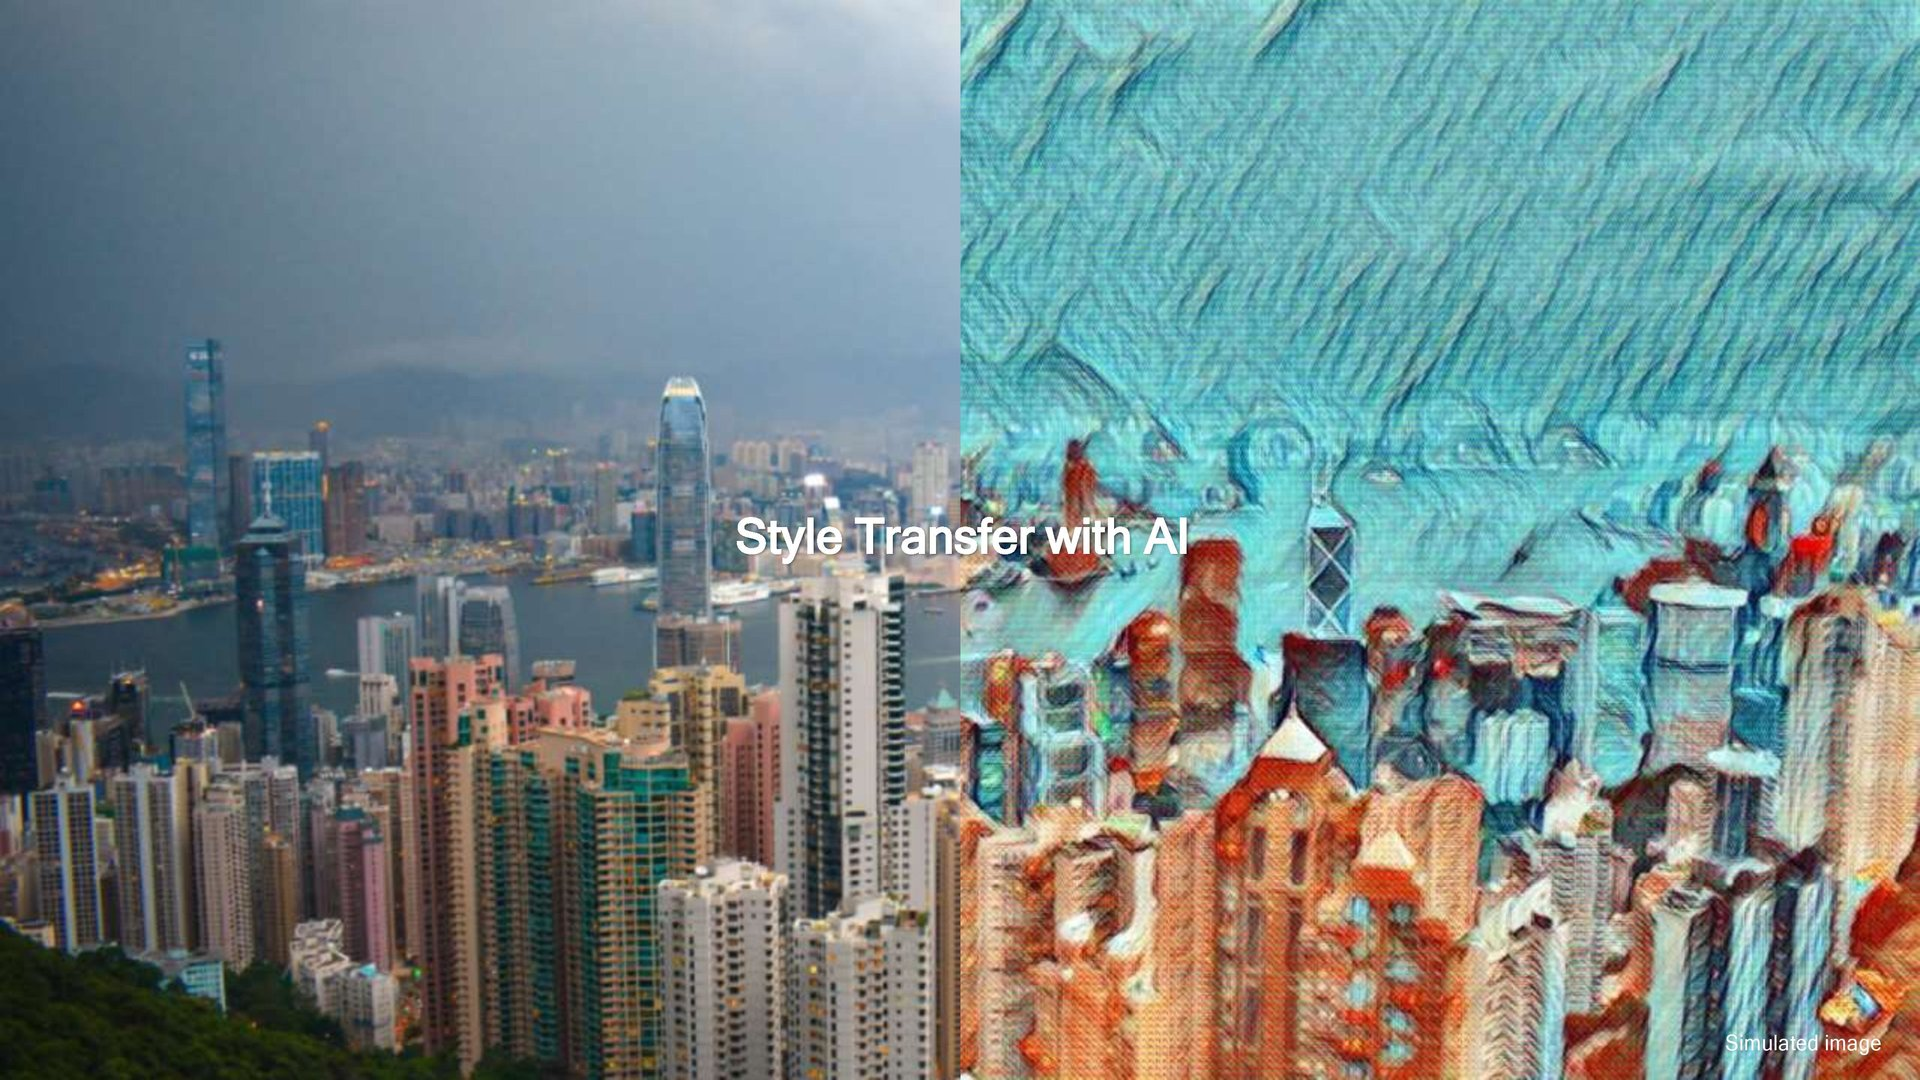 Style Transfer with AI